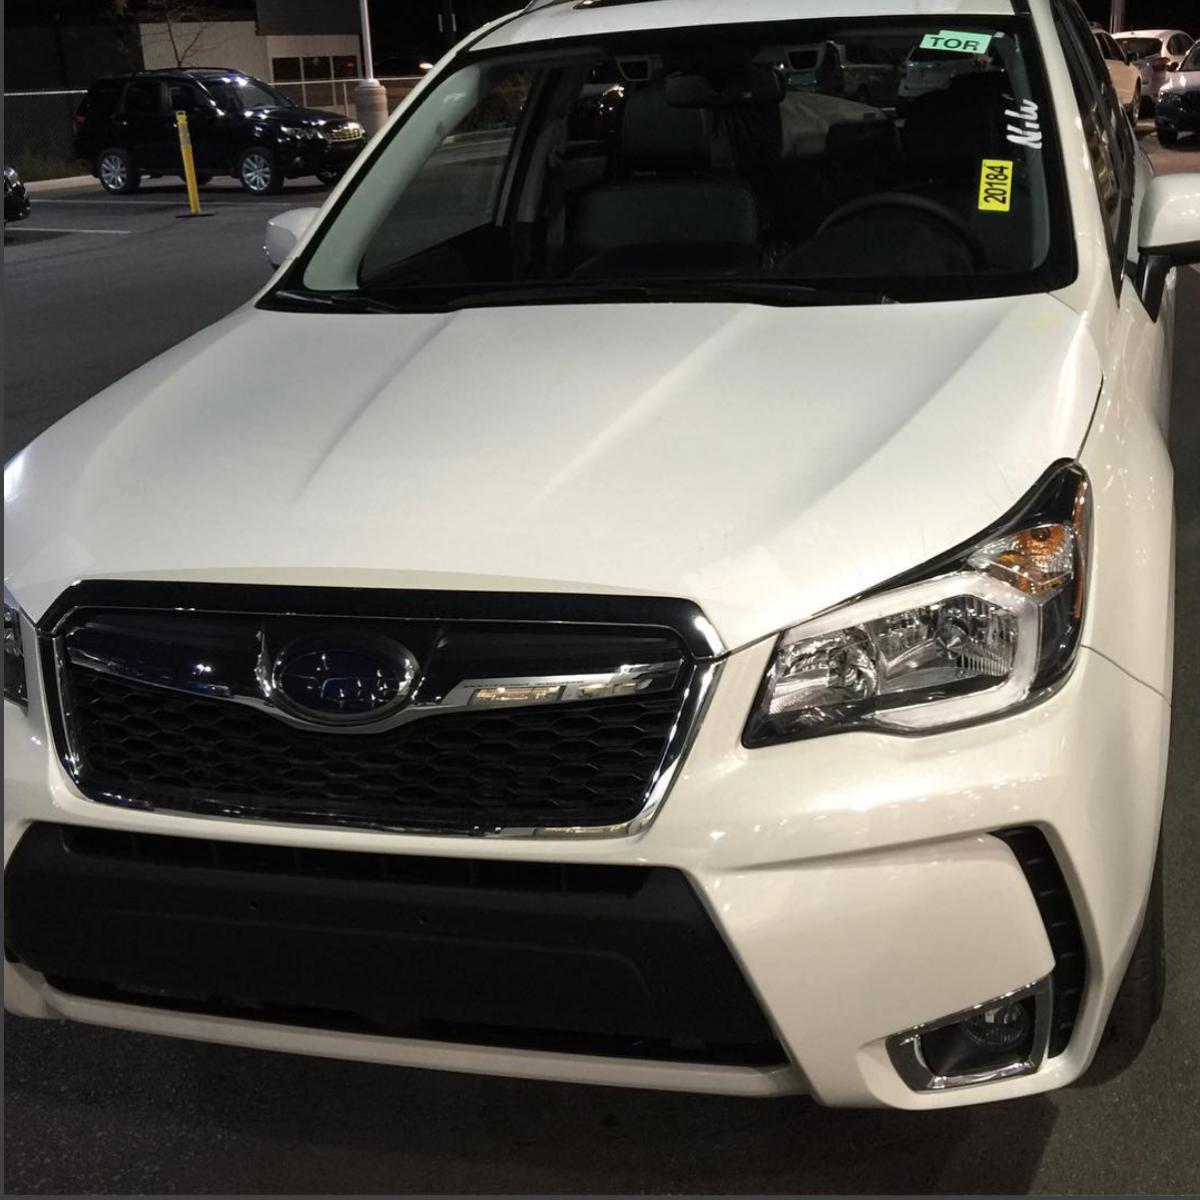 2015 Subaru Forester Transmission: New To Subaru, 2016 Forester Ltd Crystal Pearl White